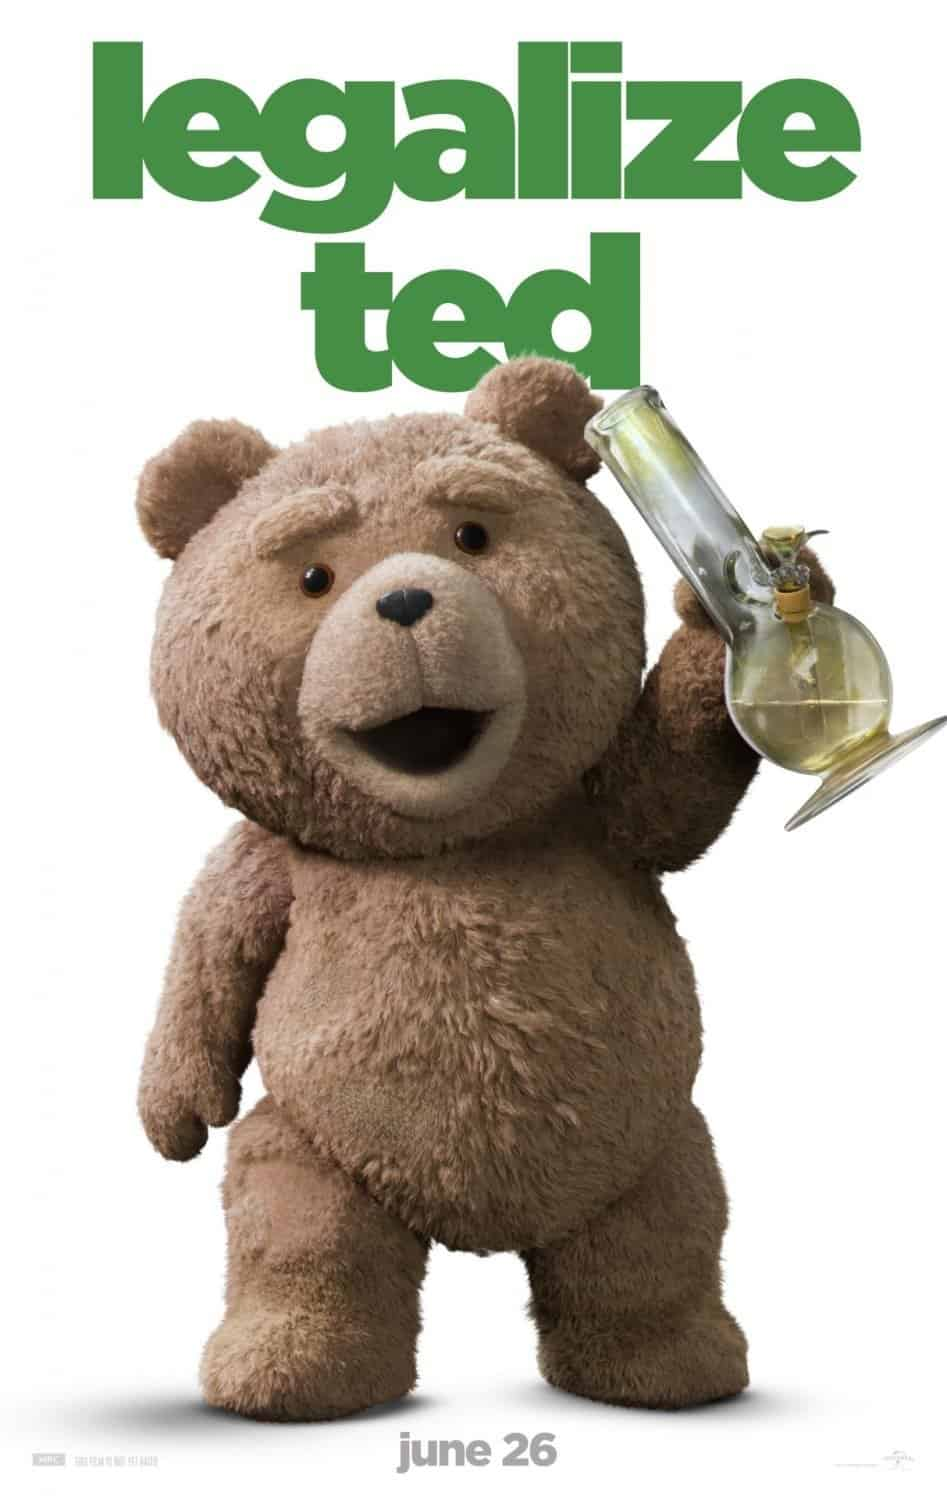 Understatement Funny Ted 2 - Review